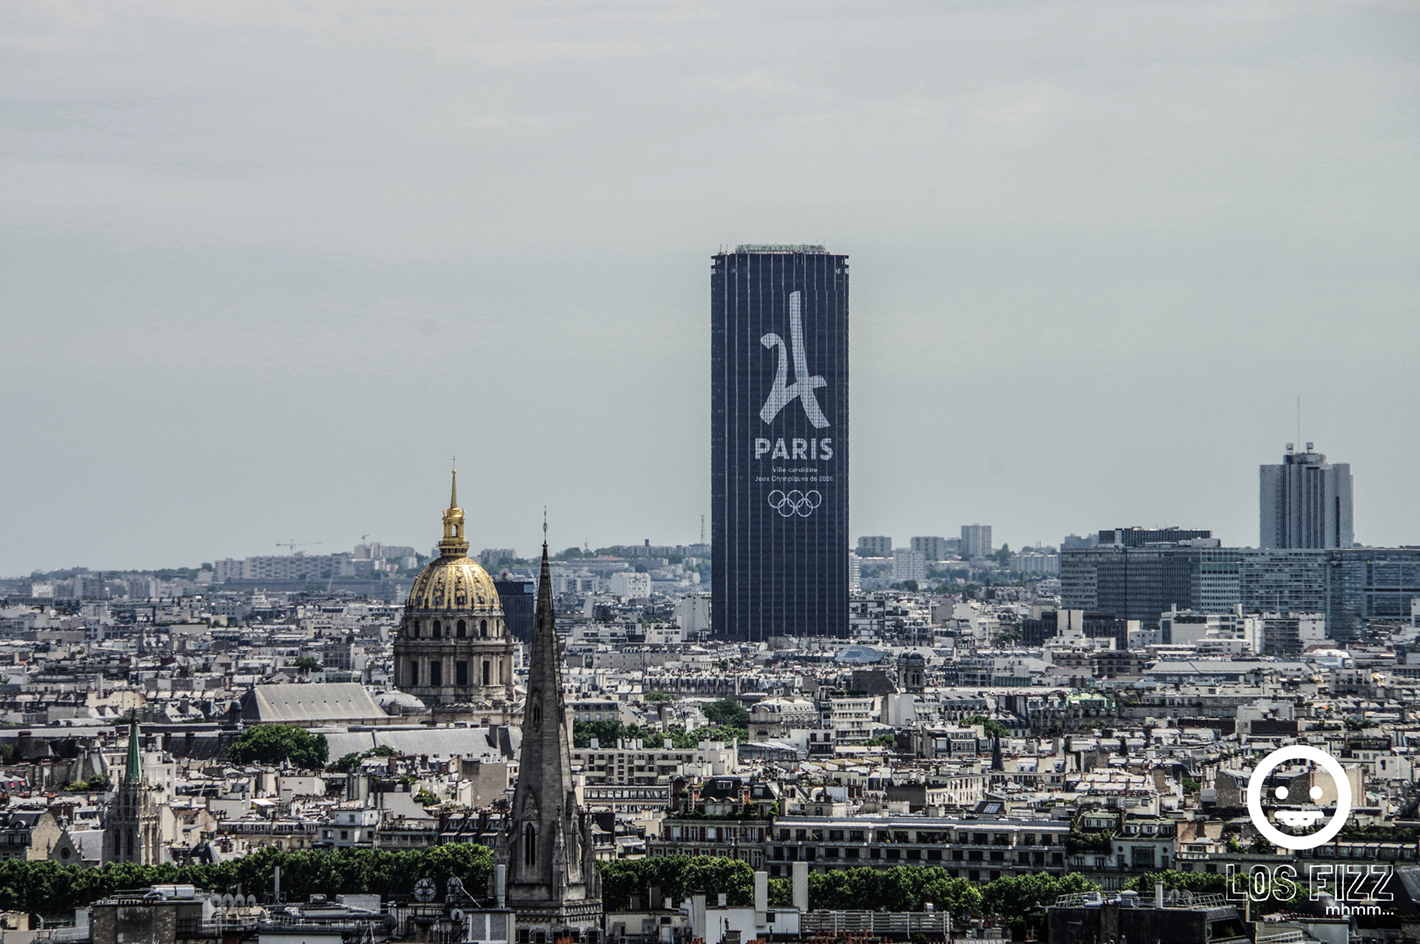 2024 summer olympics in Paris, France. Photo By LosFizz.